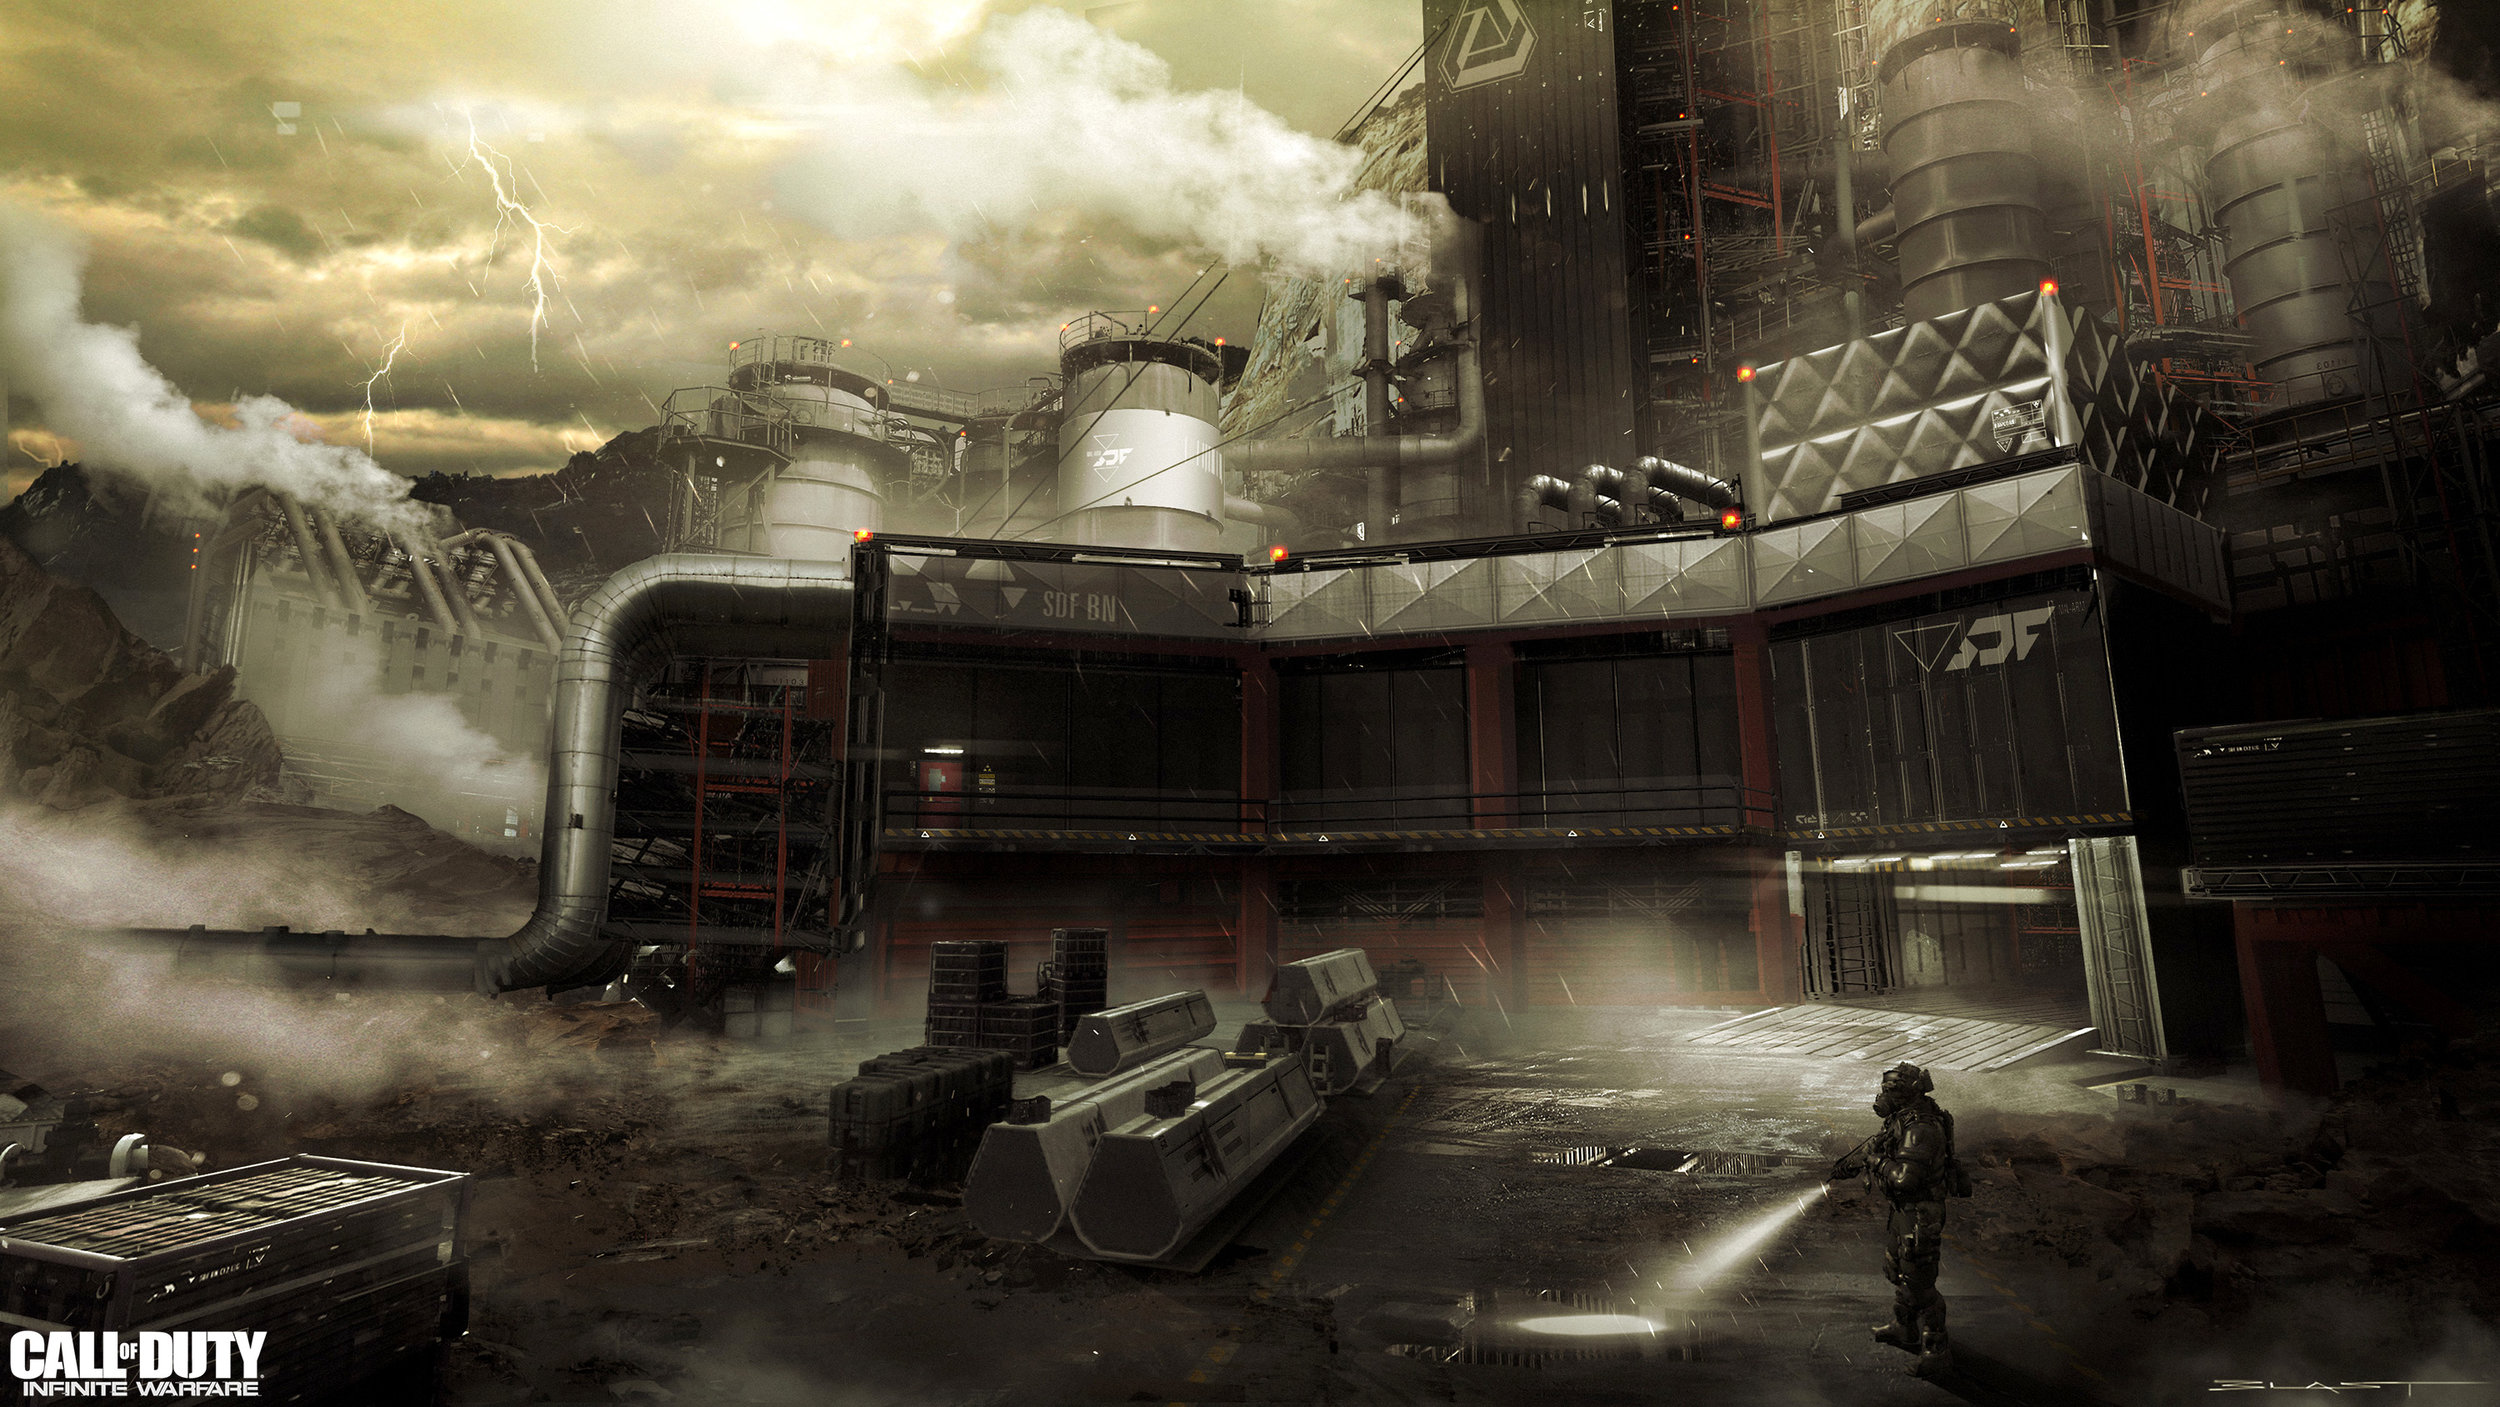 callofduty_concept_design_illustration_benjaminlast_art_3